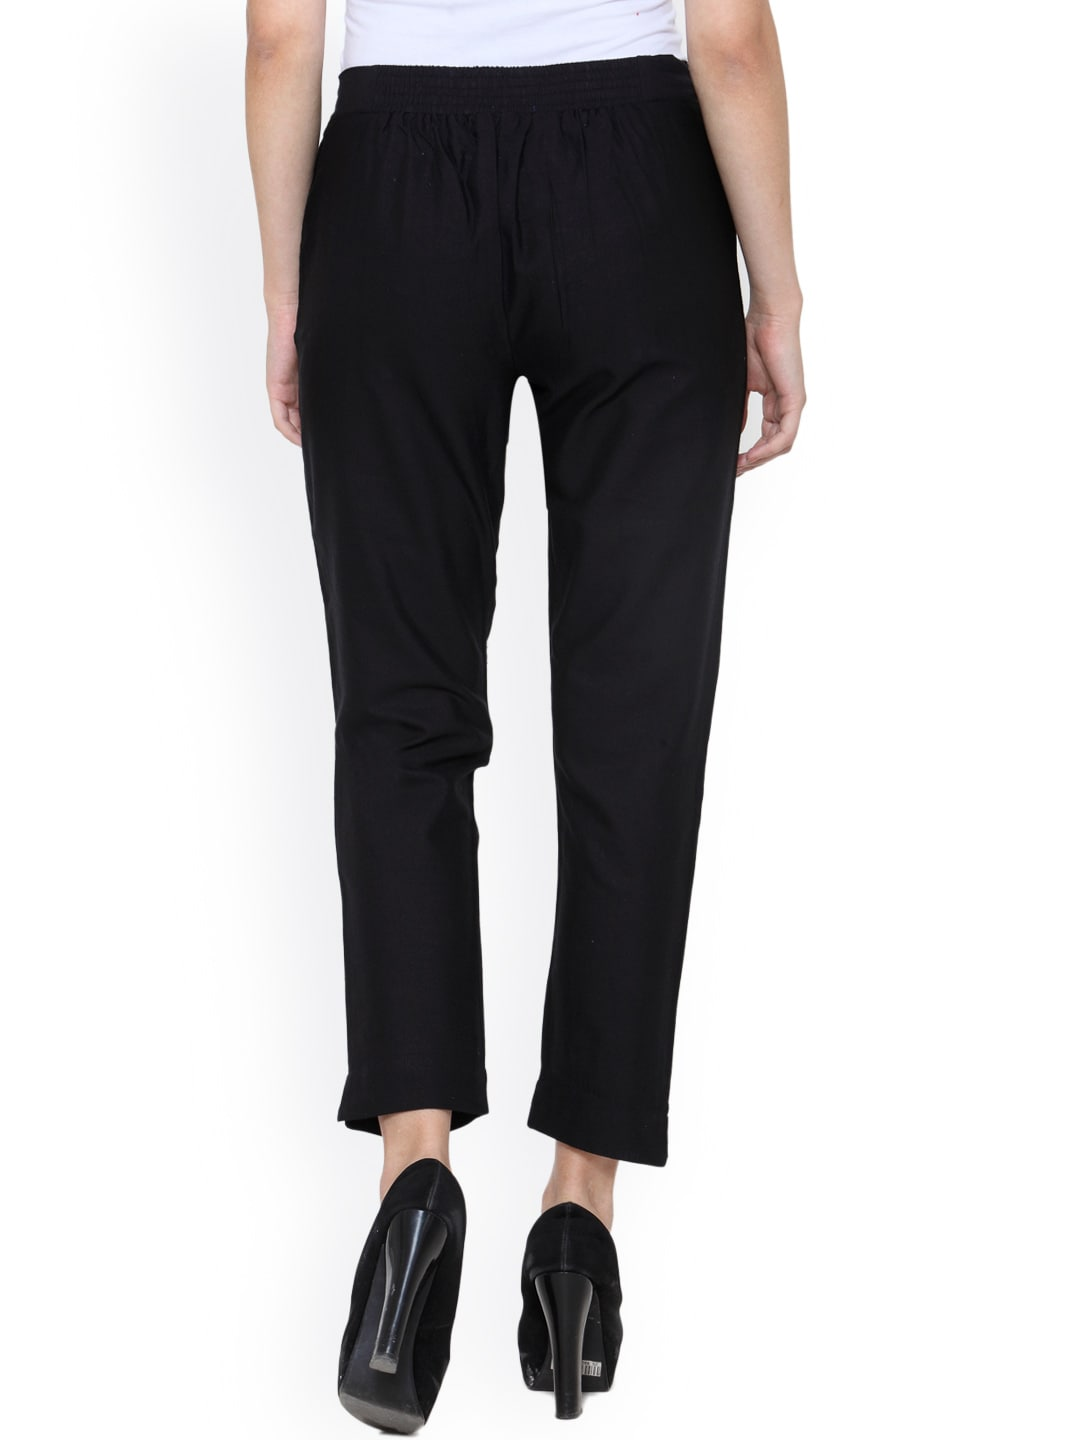 Shop eBay for great deals on Black Pants for Women. You'll find new or used products in Black Pants for Women on eBay. Free shipping on selected items.